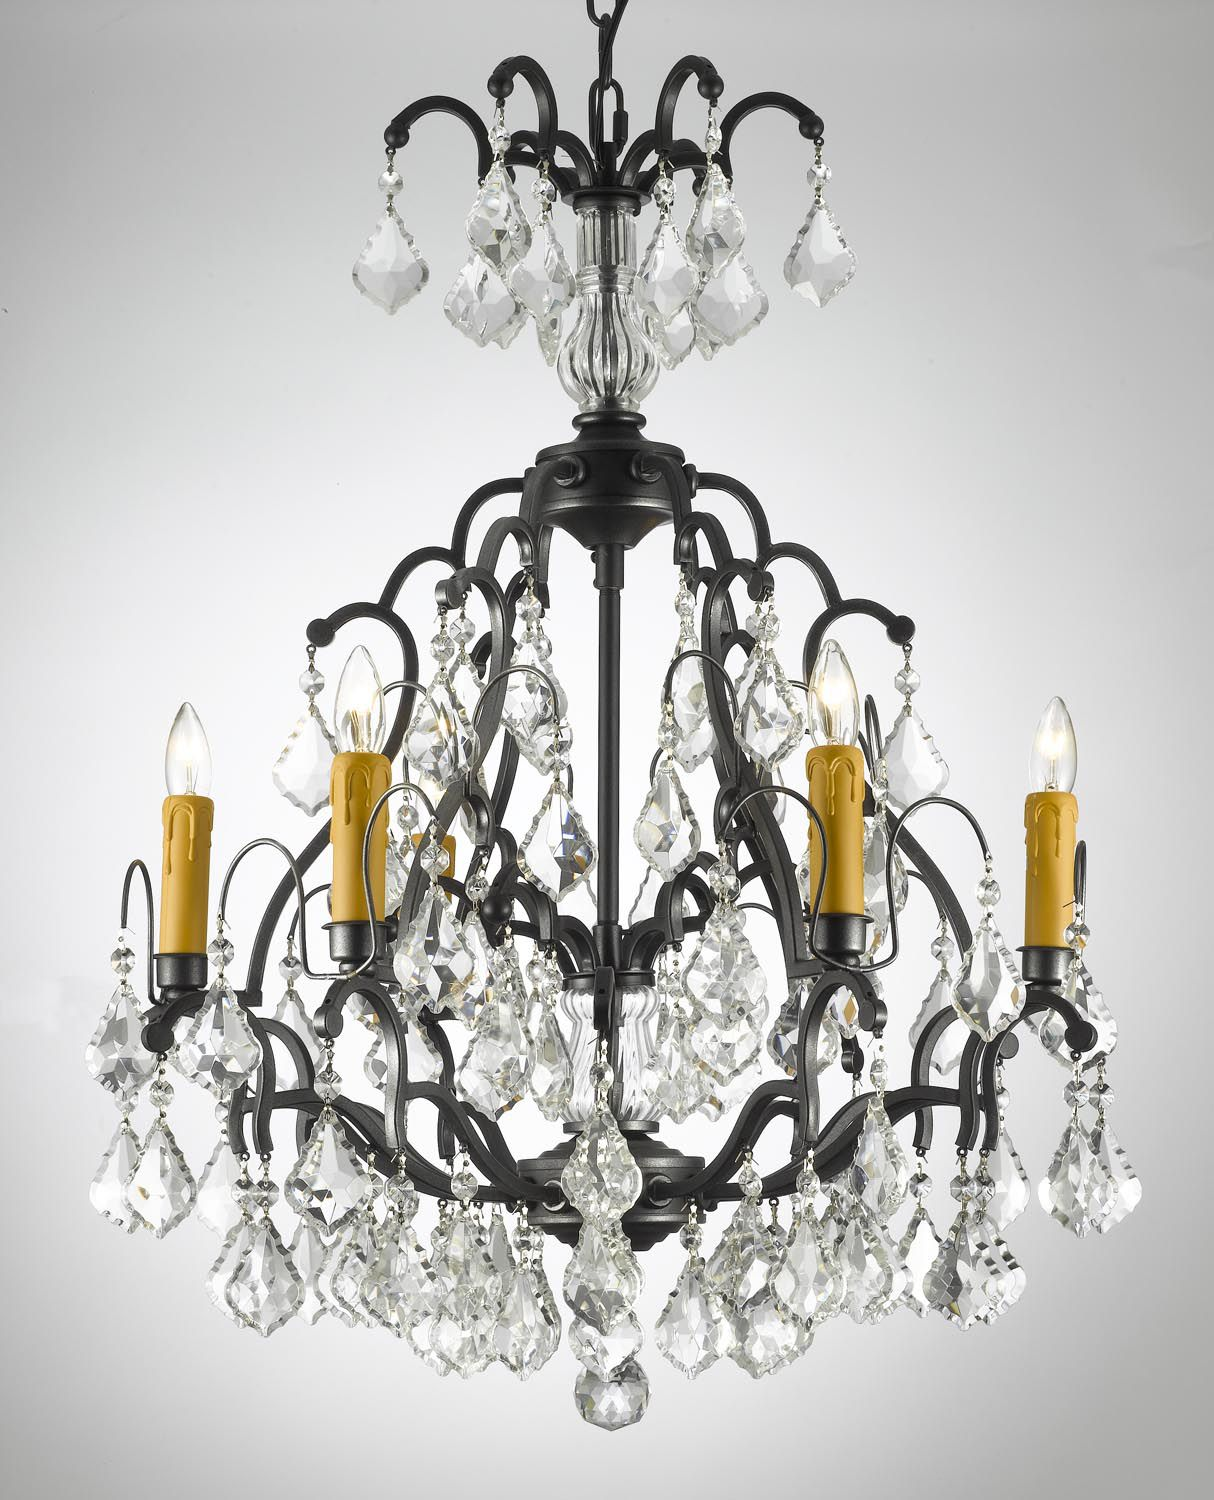 G7 443 6 Wrought Iron Versailles Wrought Iron Chandelier Iron Chandeliers Wrought Iron Chandeliers Crystal Chandelier Lighting